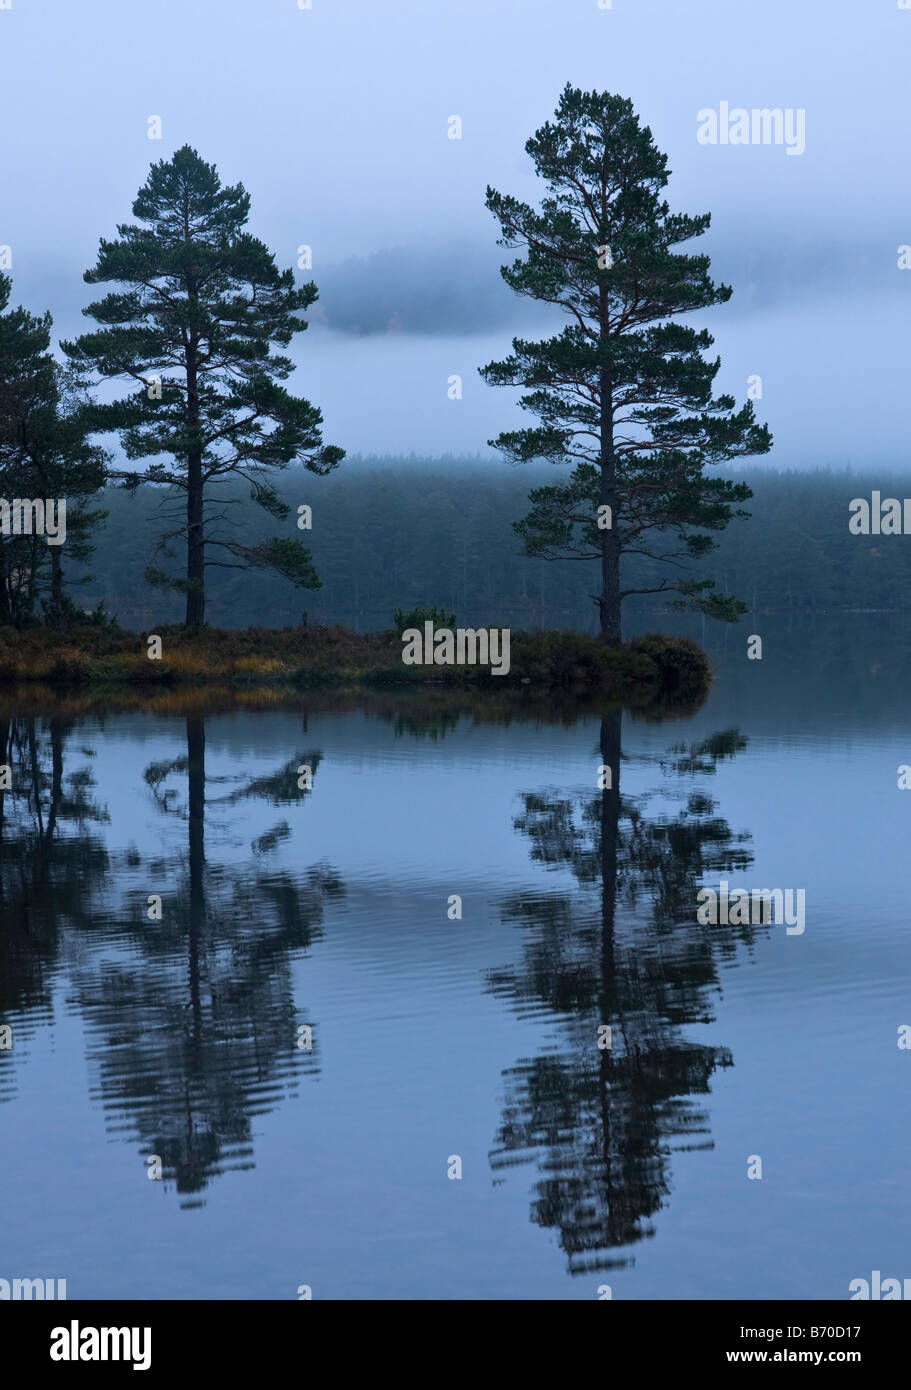 Misty morning at Loch an Eilein, Cairngorms National Park - Stock Image